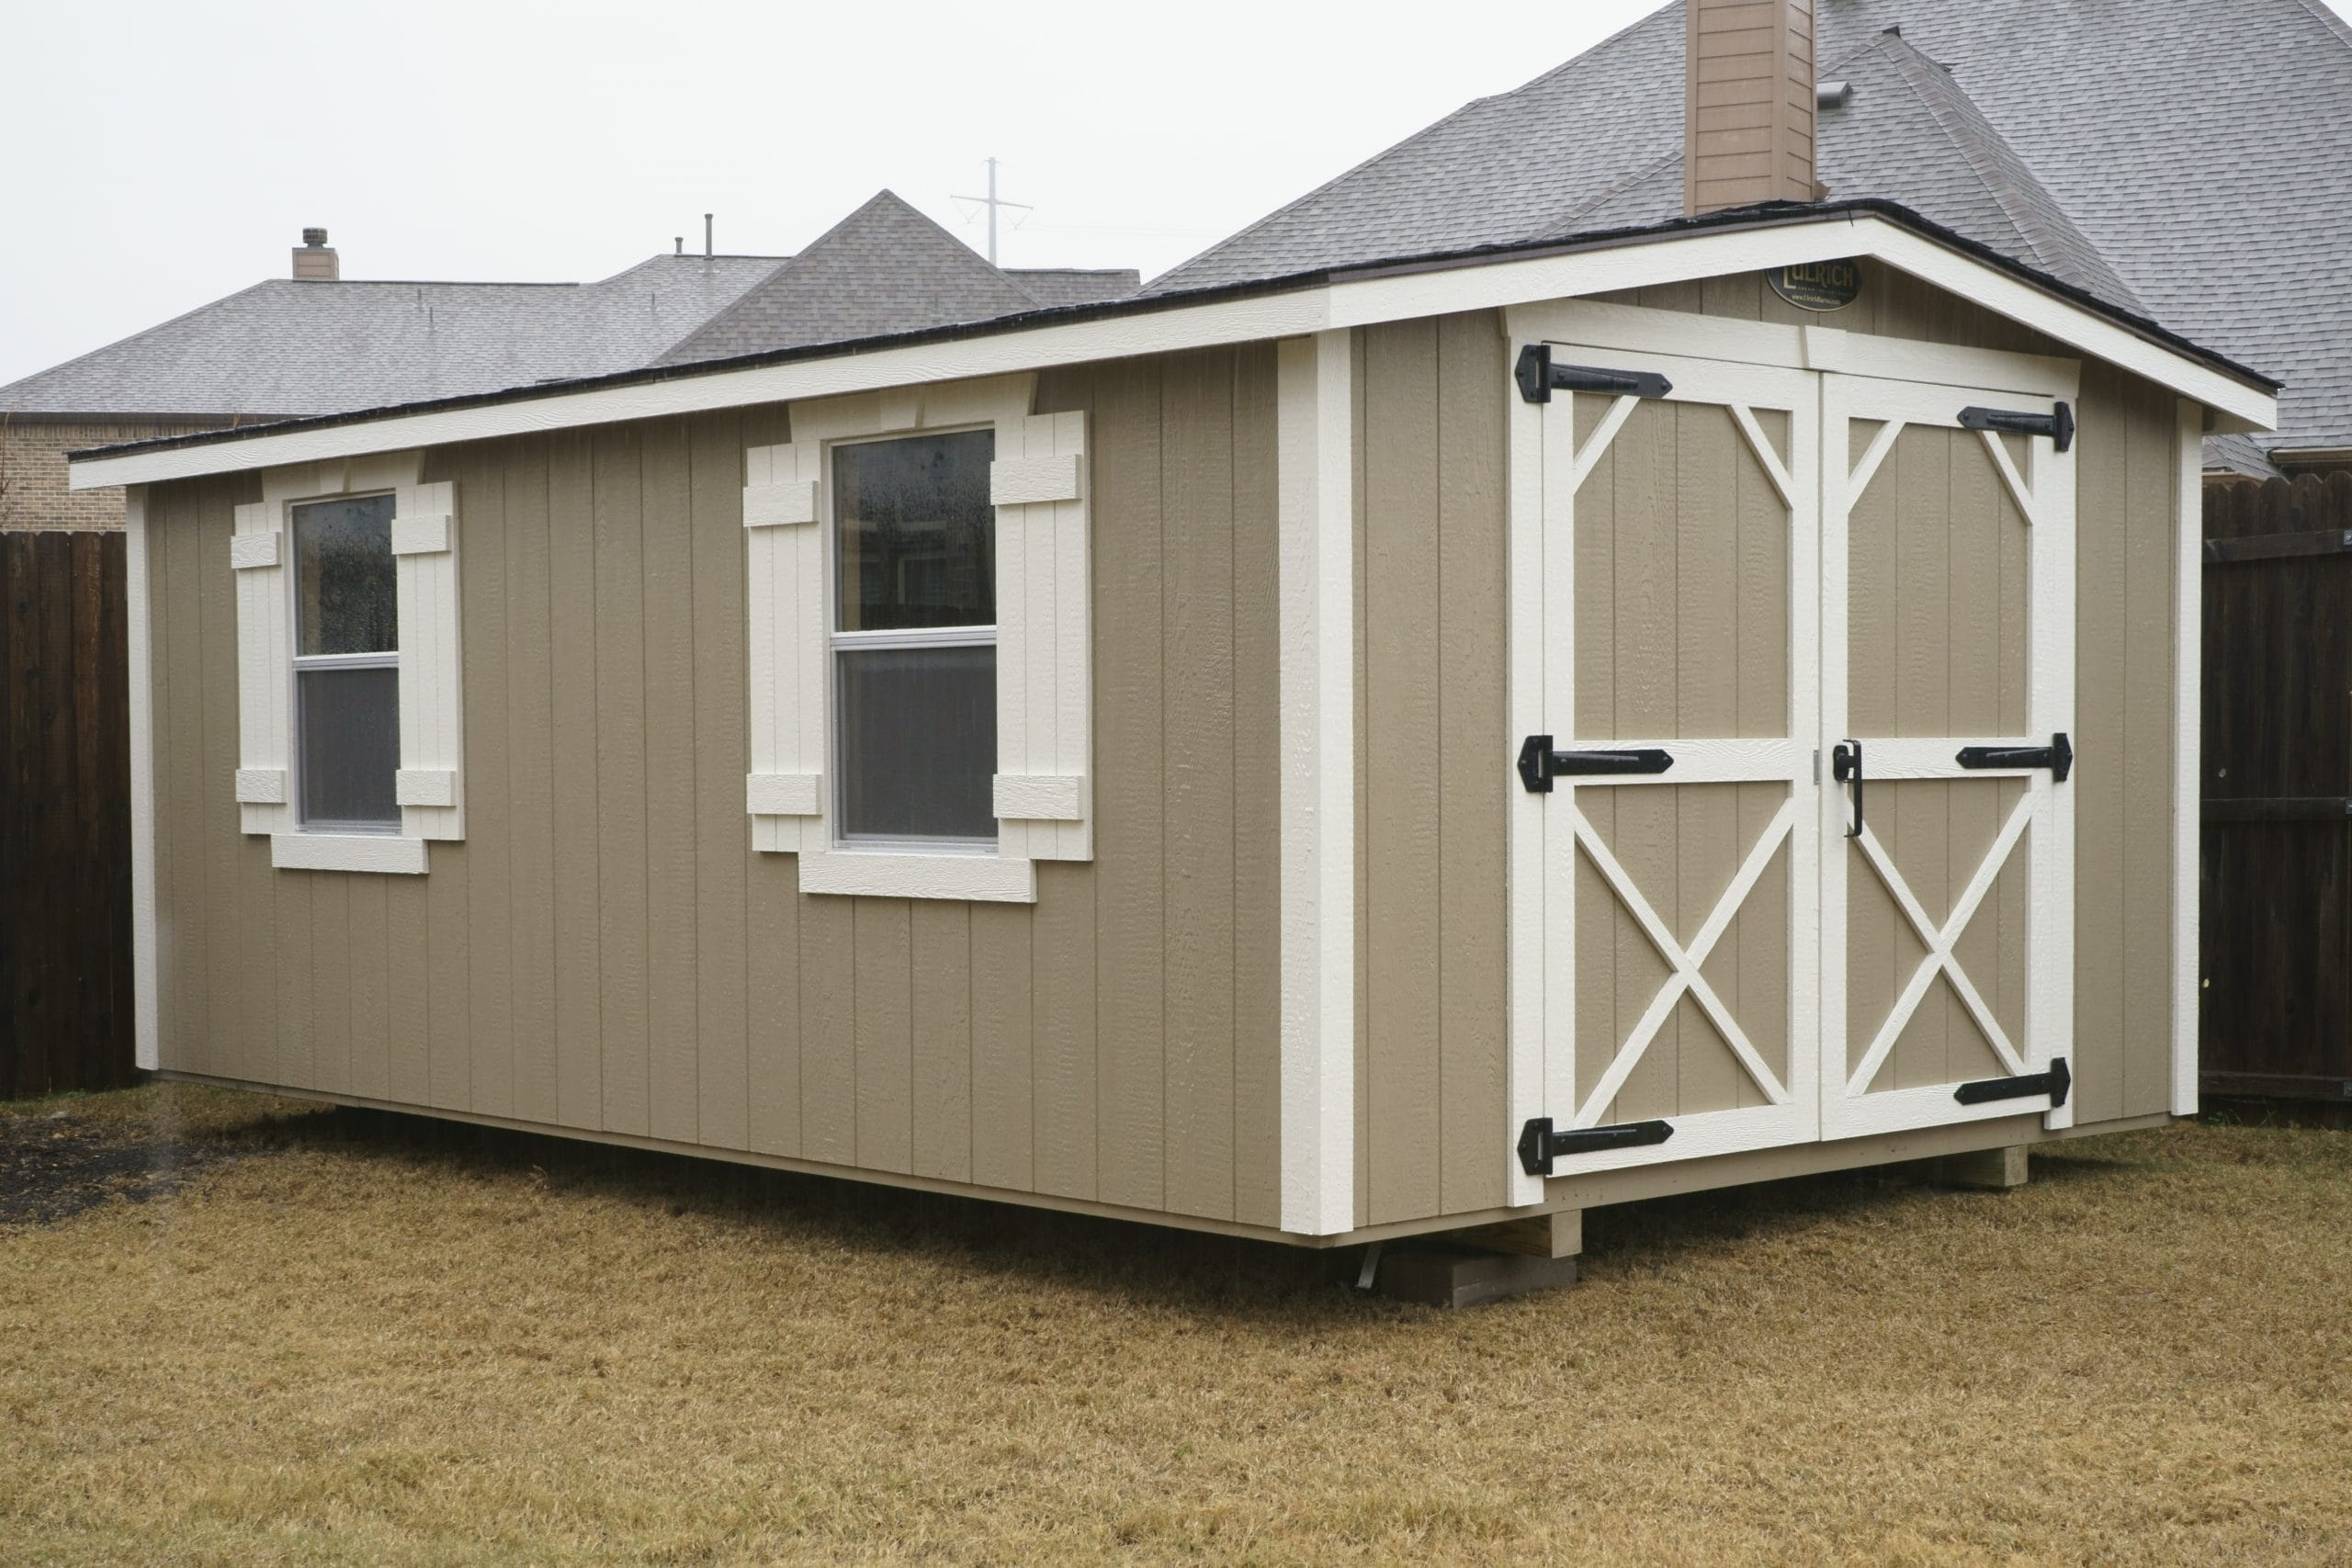 HOA Compliant Shed